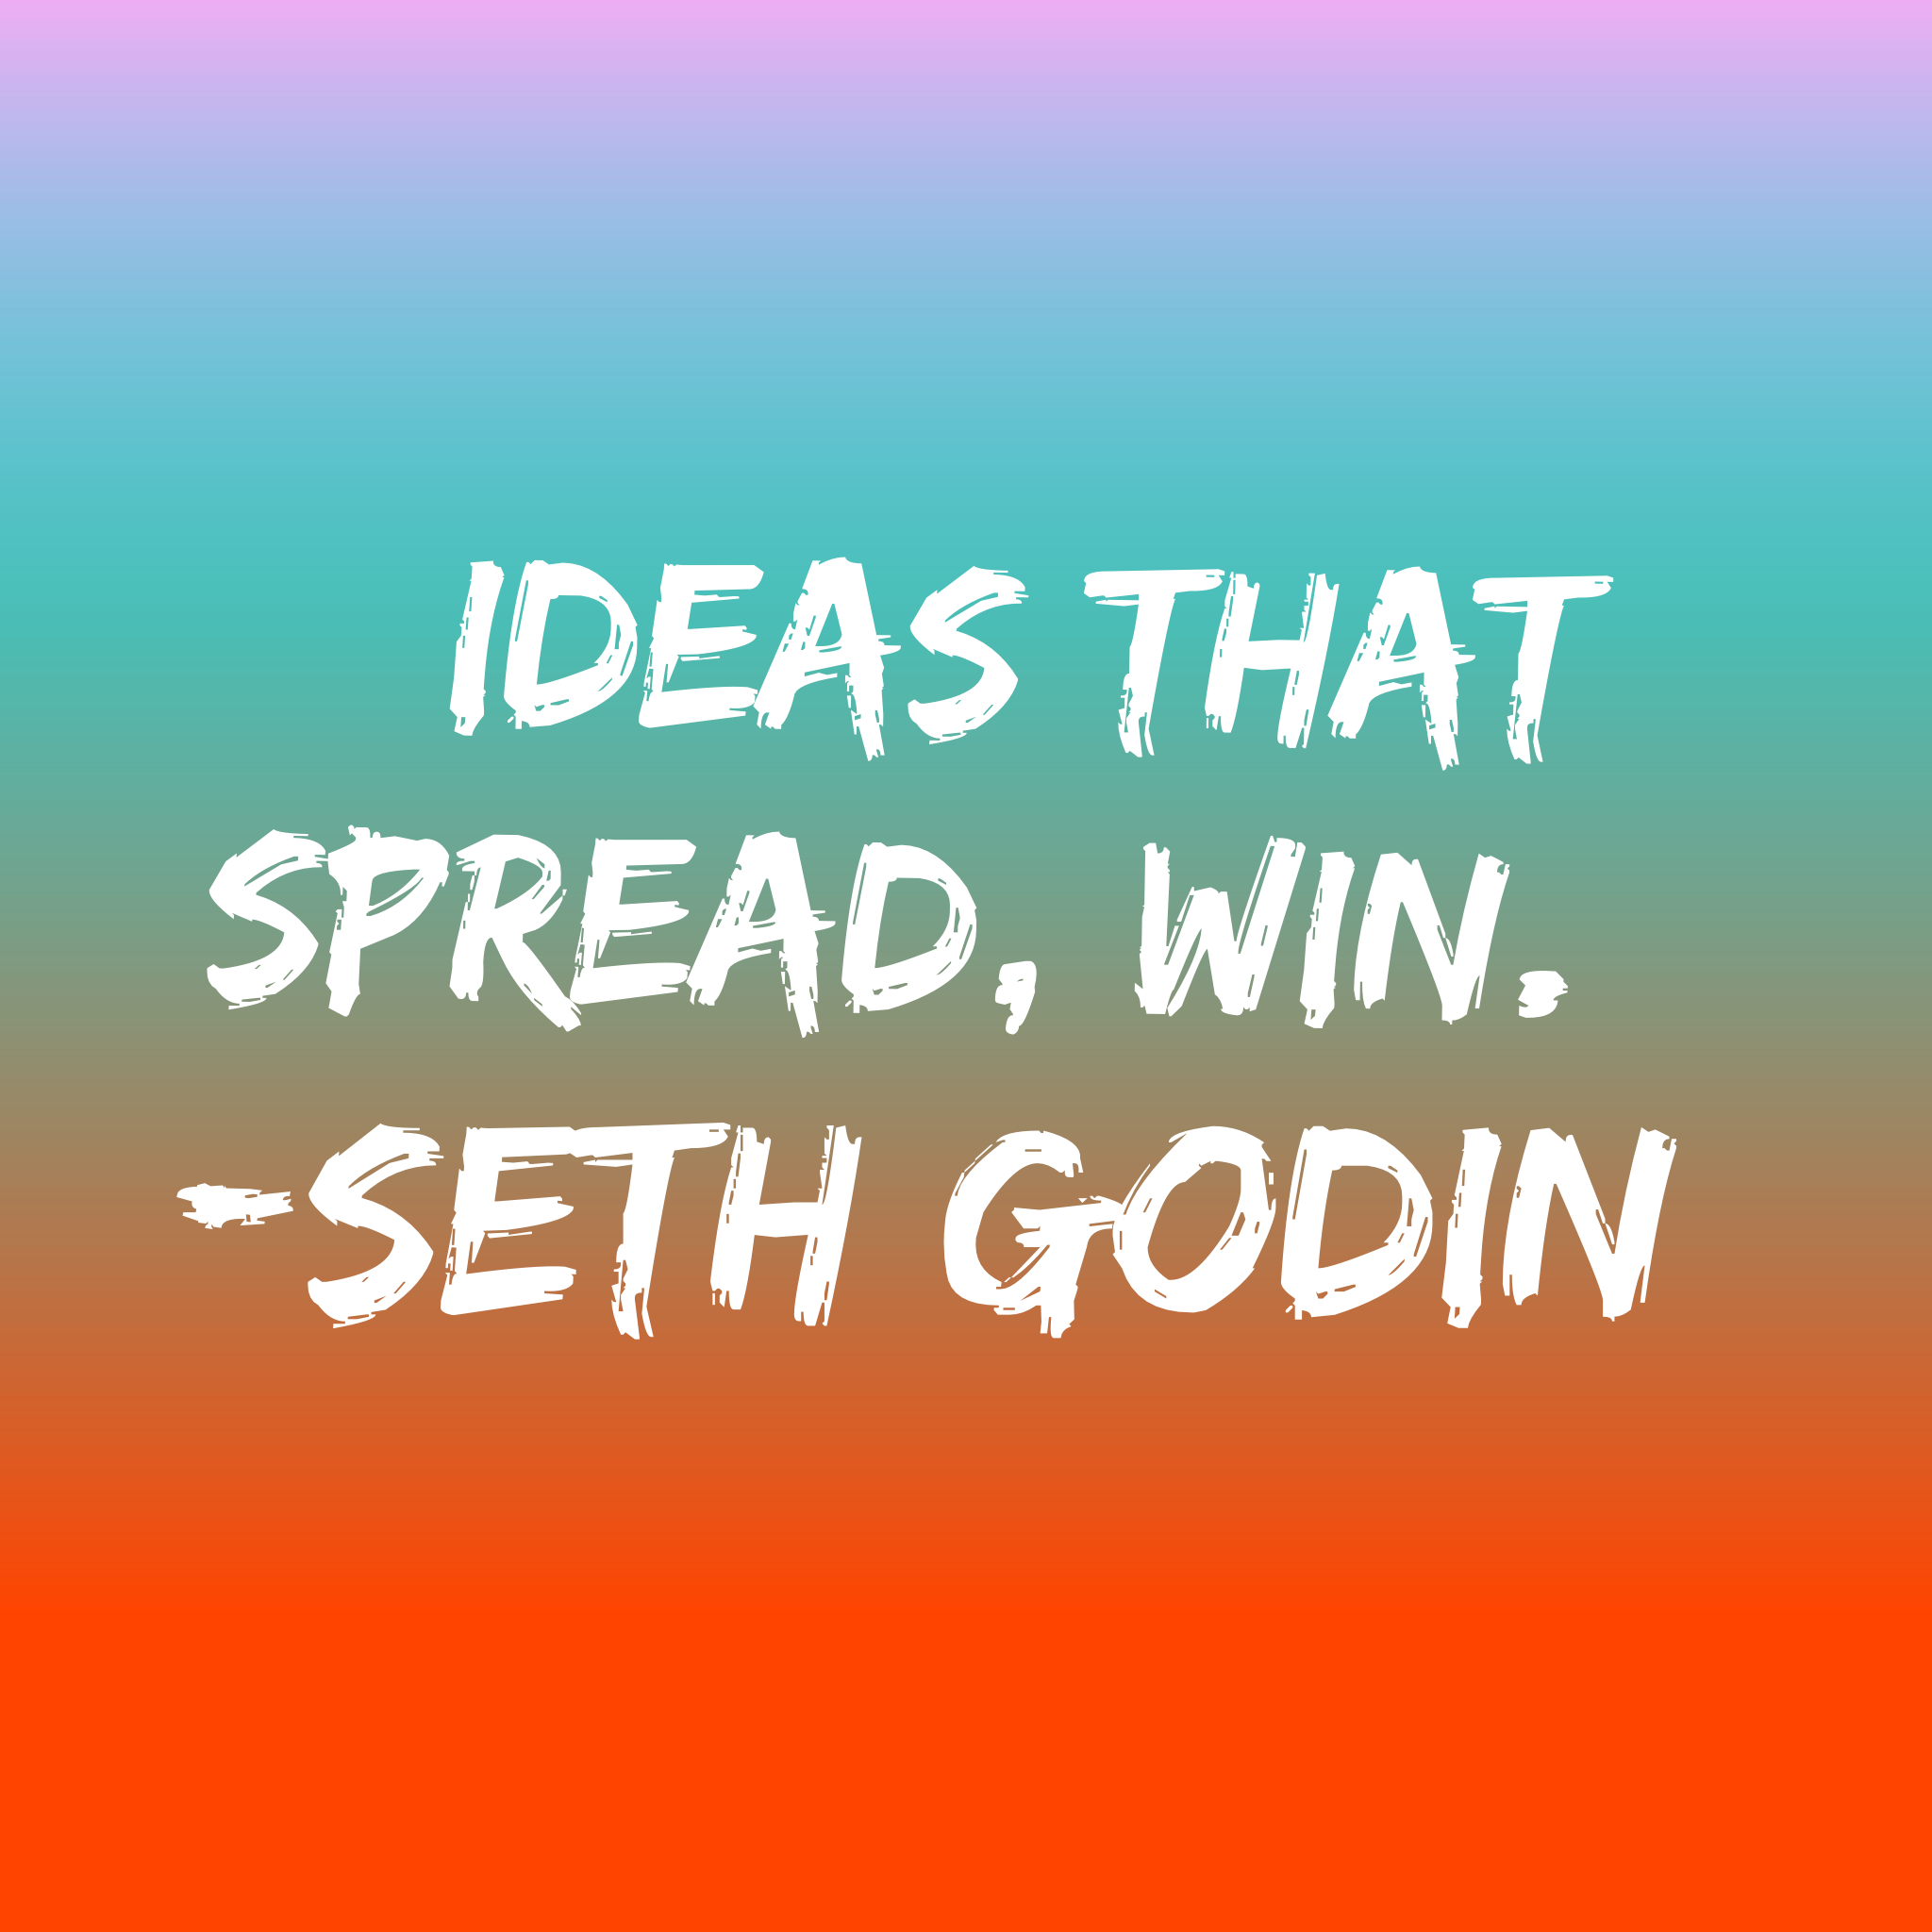 Ideas that spread, win. -Seth Godin quote | 5 marketing tips for entrepreneurs